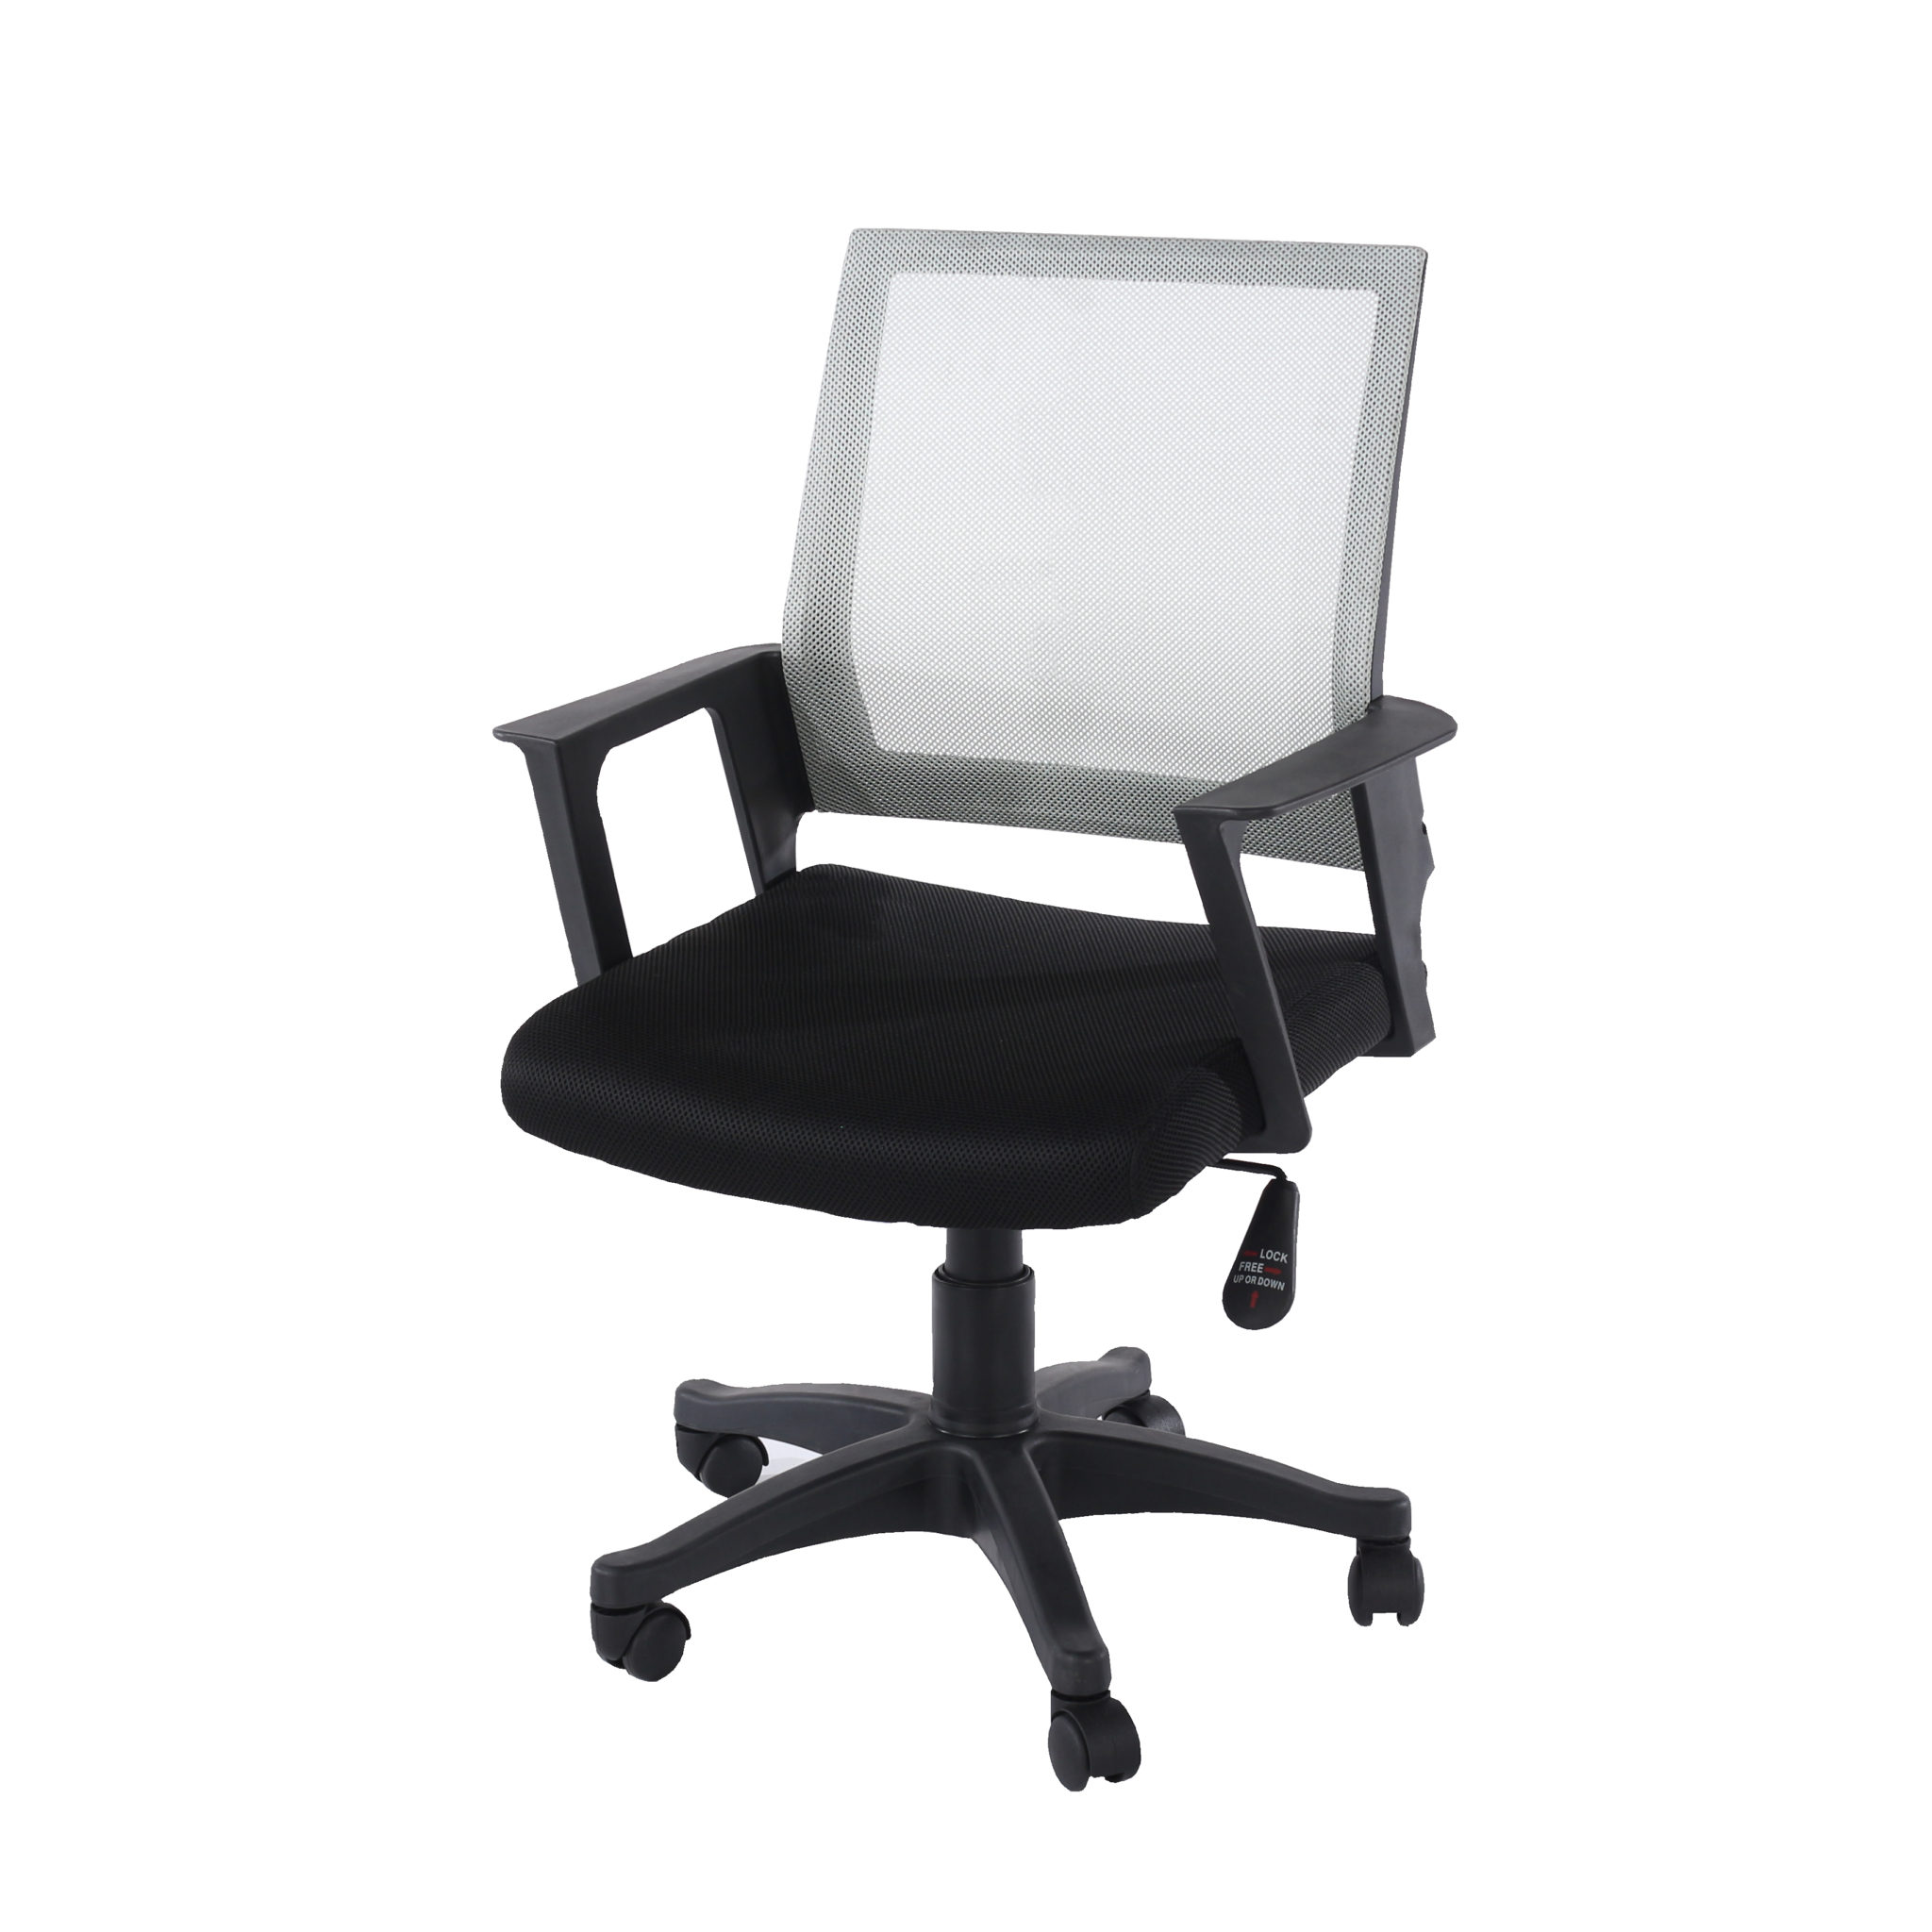 home office chair in grey mesh back with black fabric seat with black base